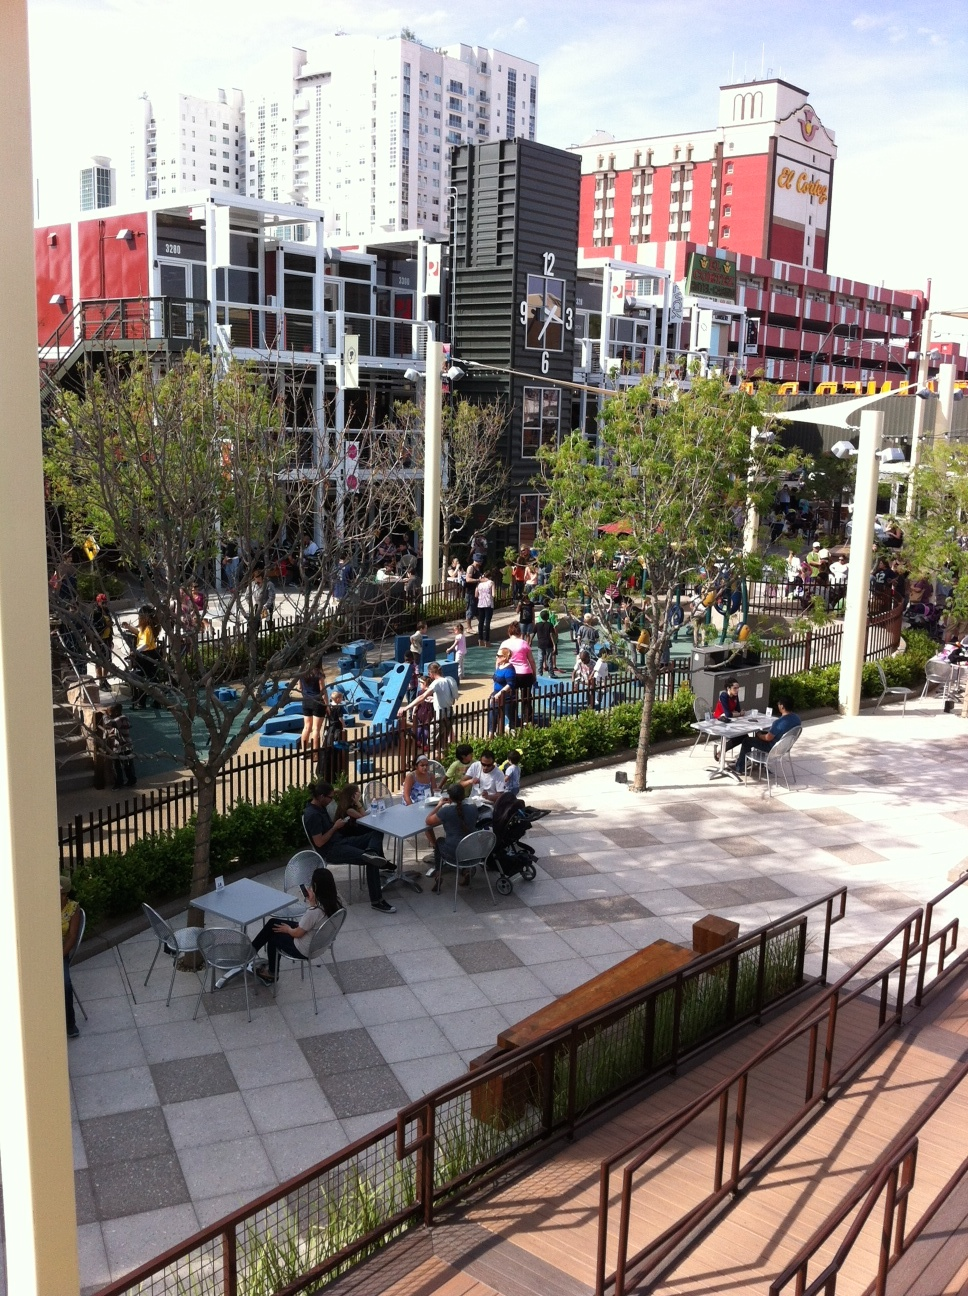 Container Park by day with downtown Las Vegas in the background.